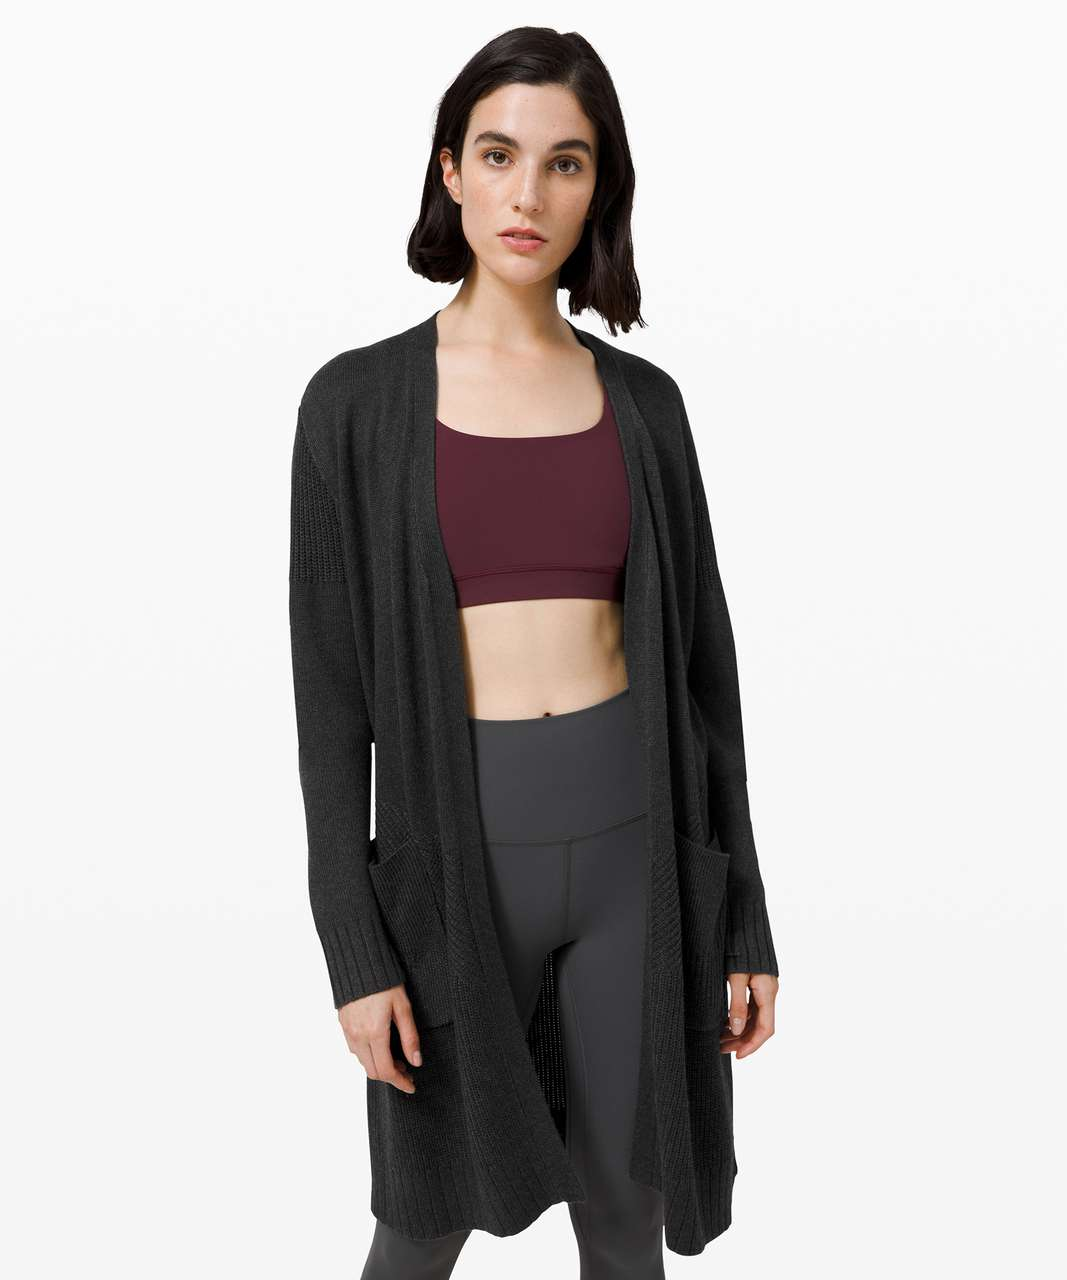 Lululemon Sincerely Yours Wrap Sweater - Heathered Deep Coal